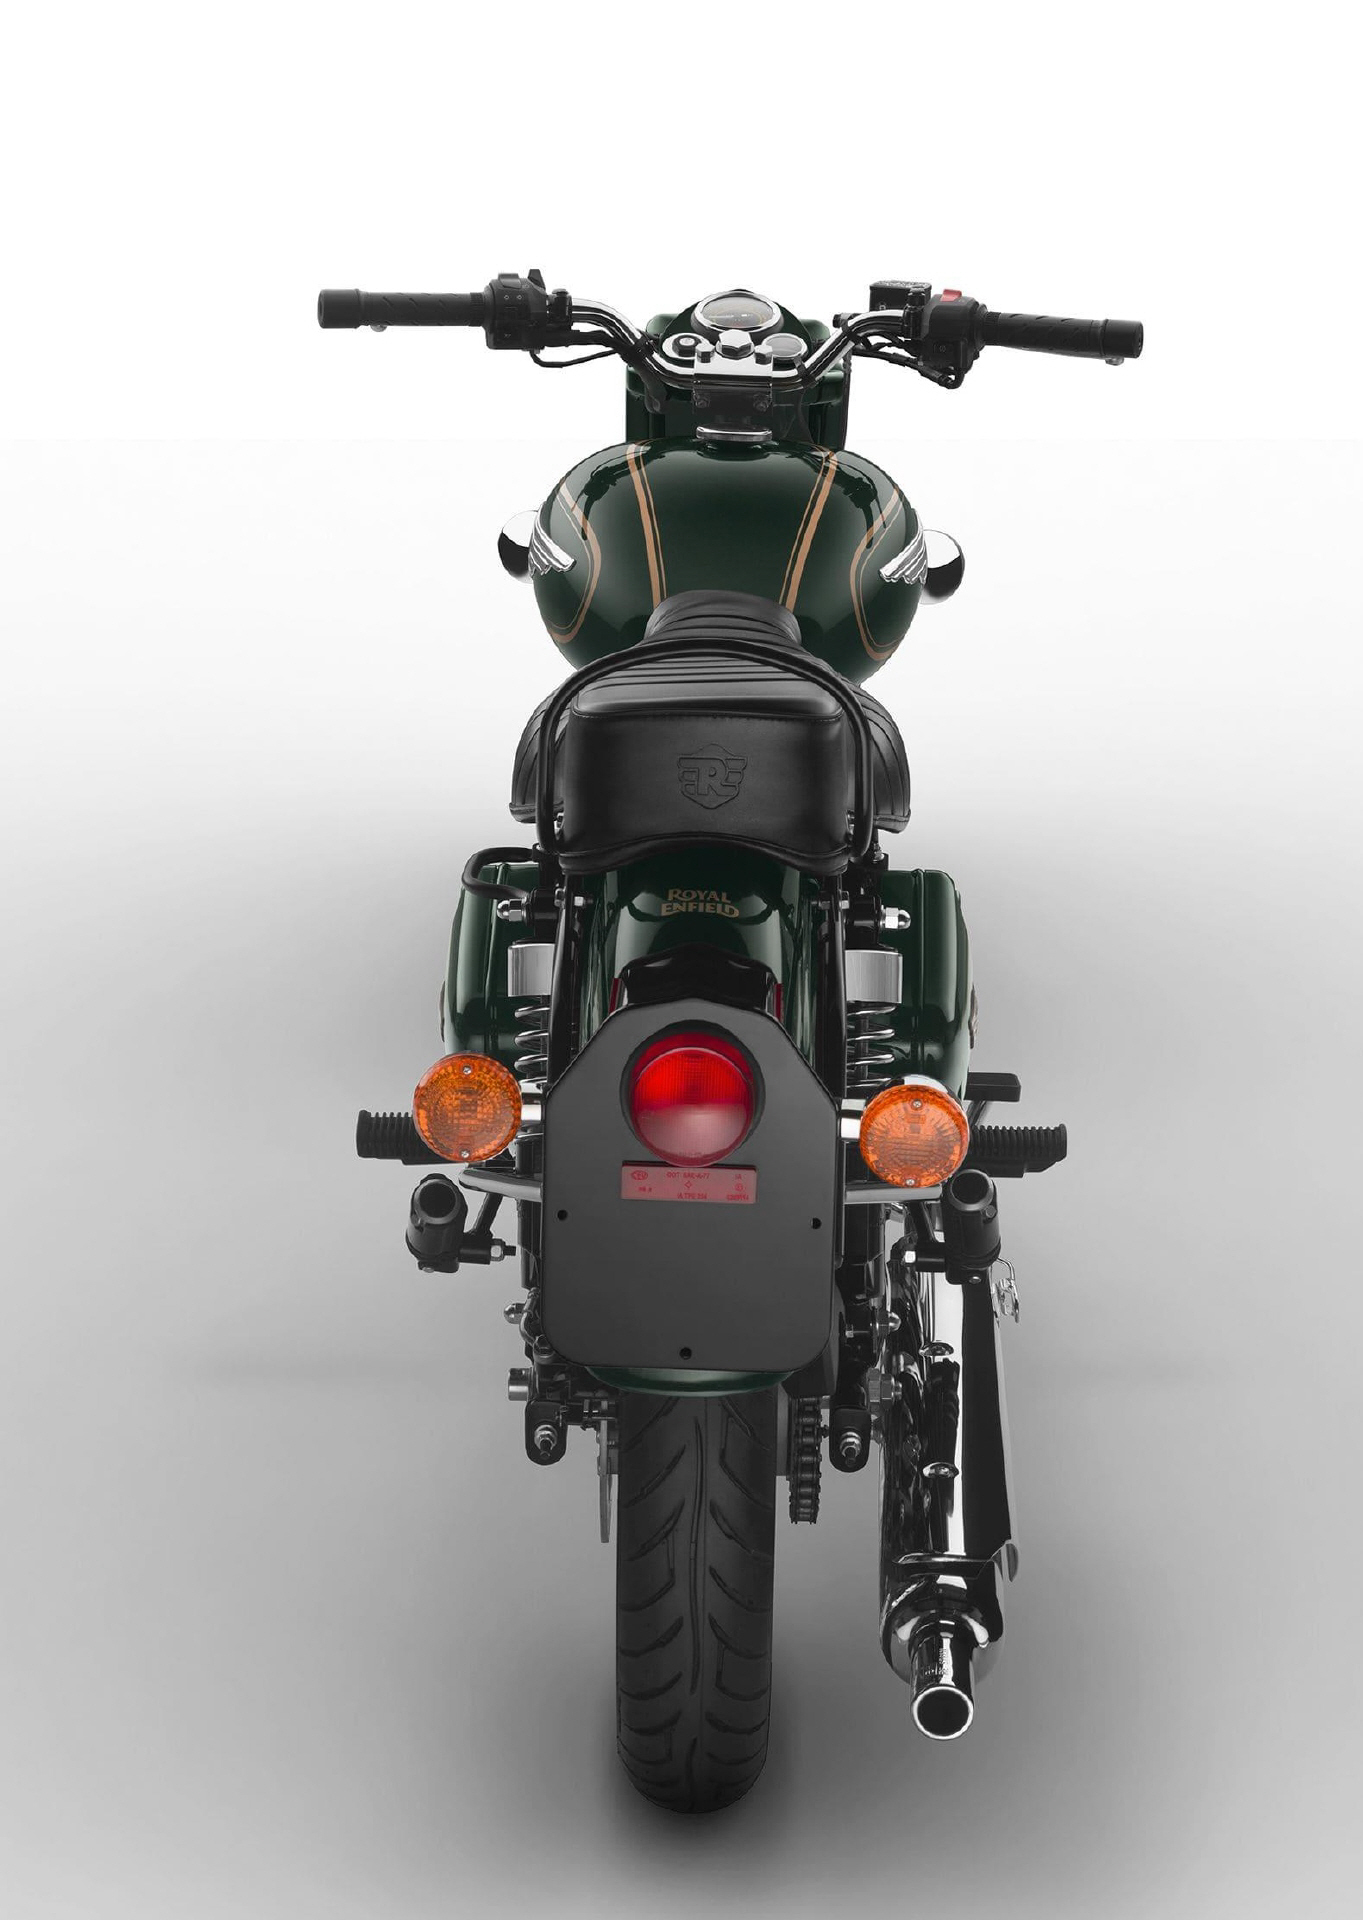 royalenfield_bullet_forestgreen_04jpg